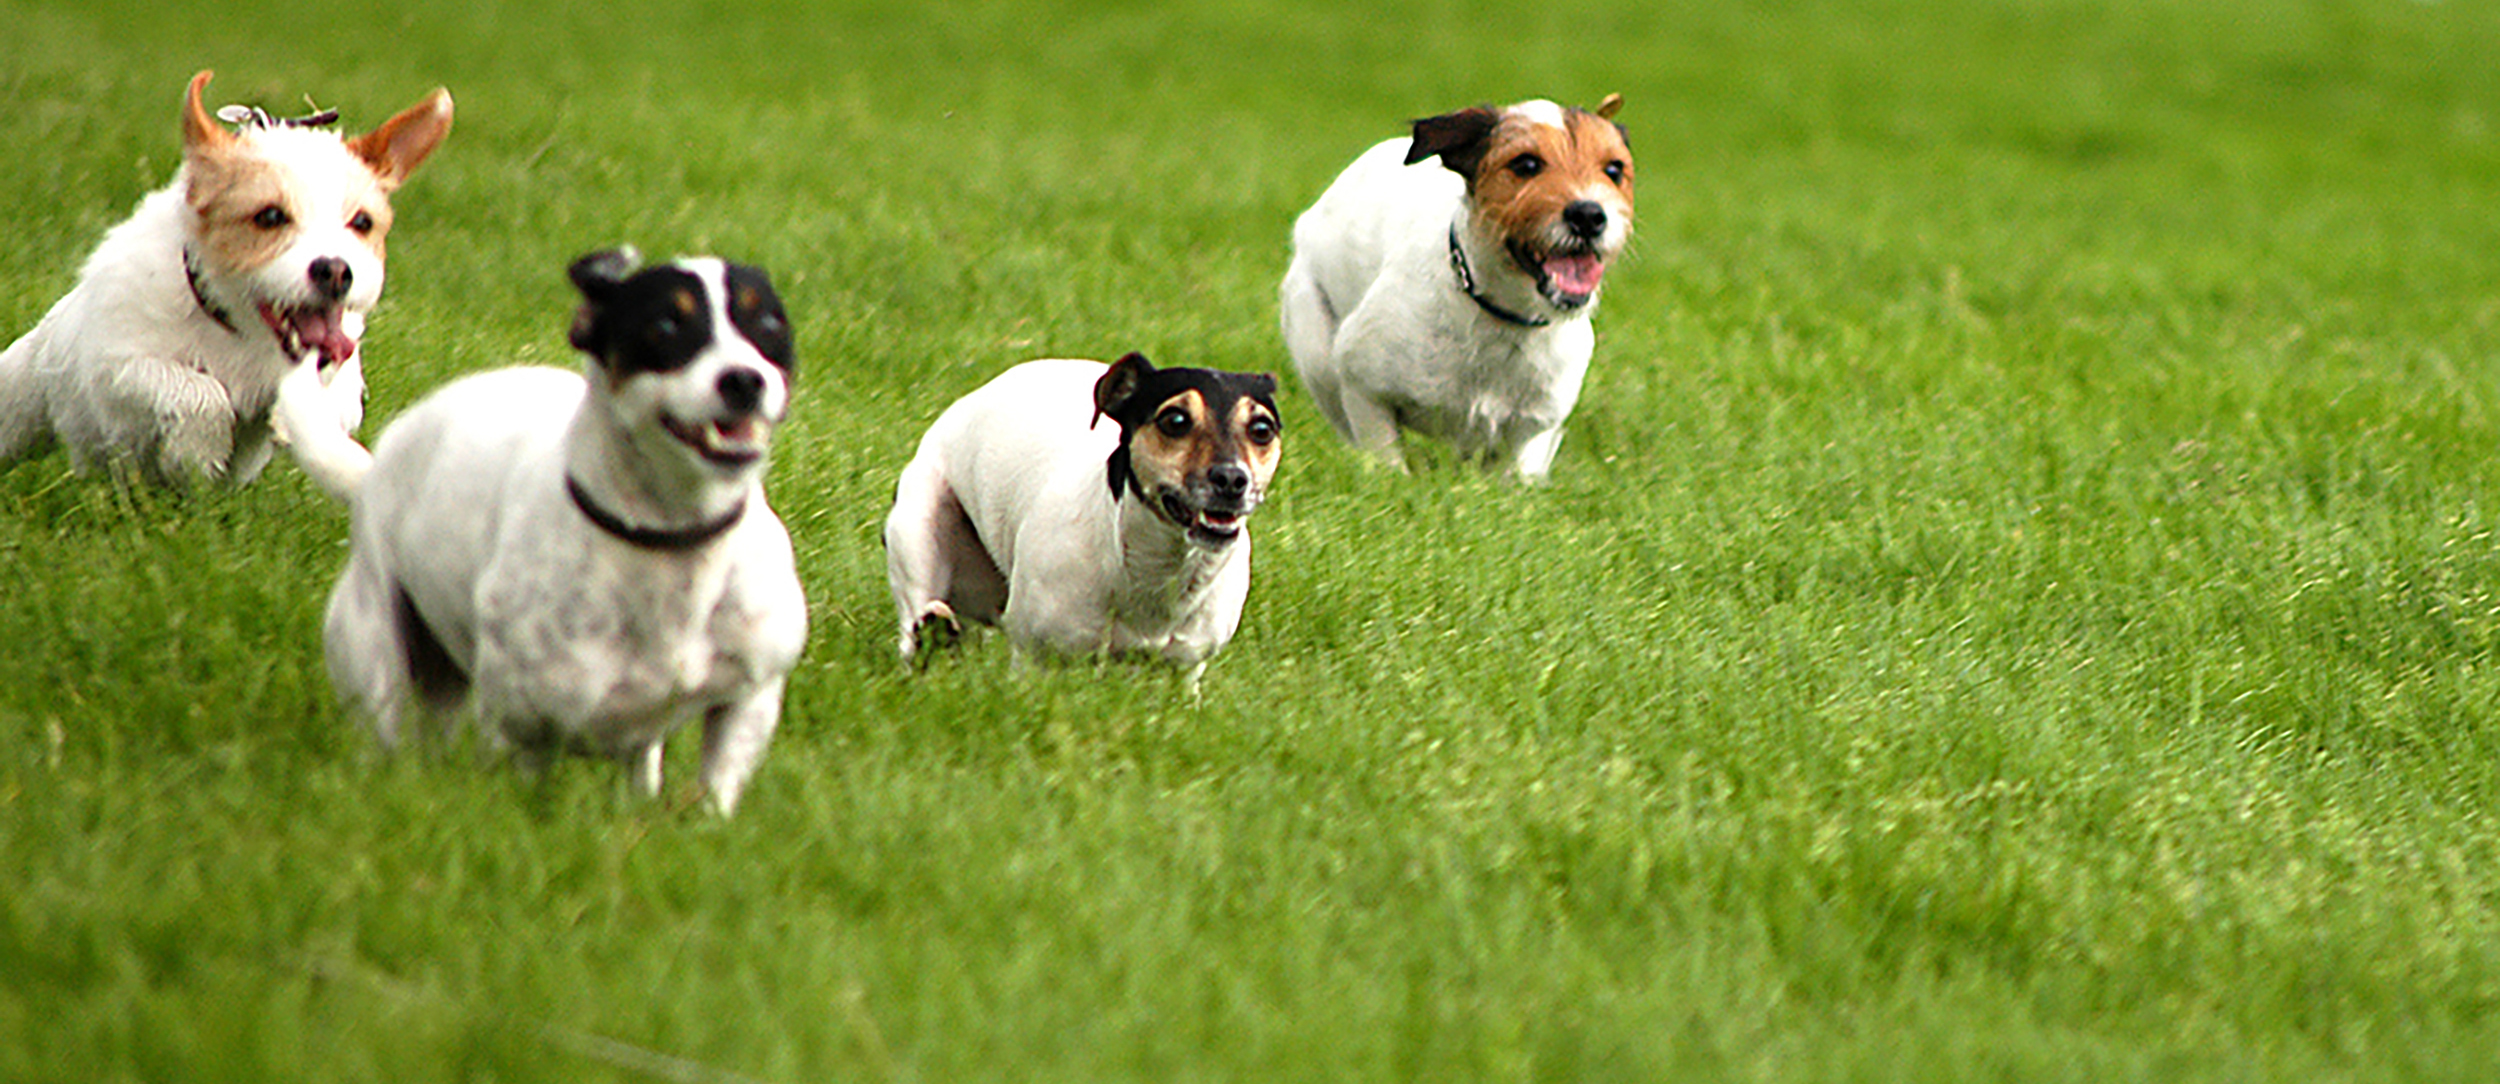 Four Terriers running across a field